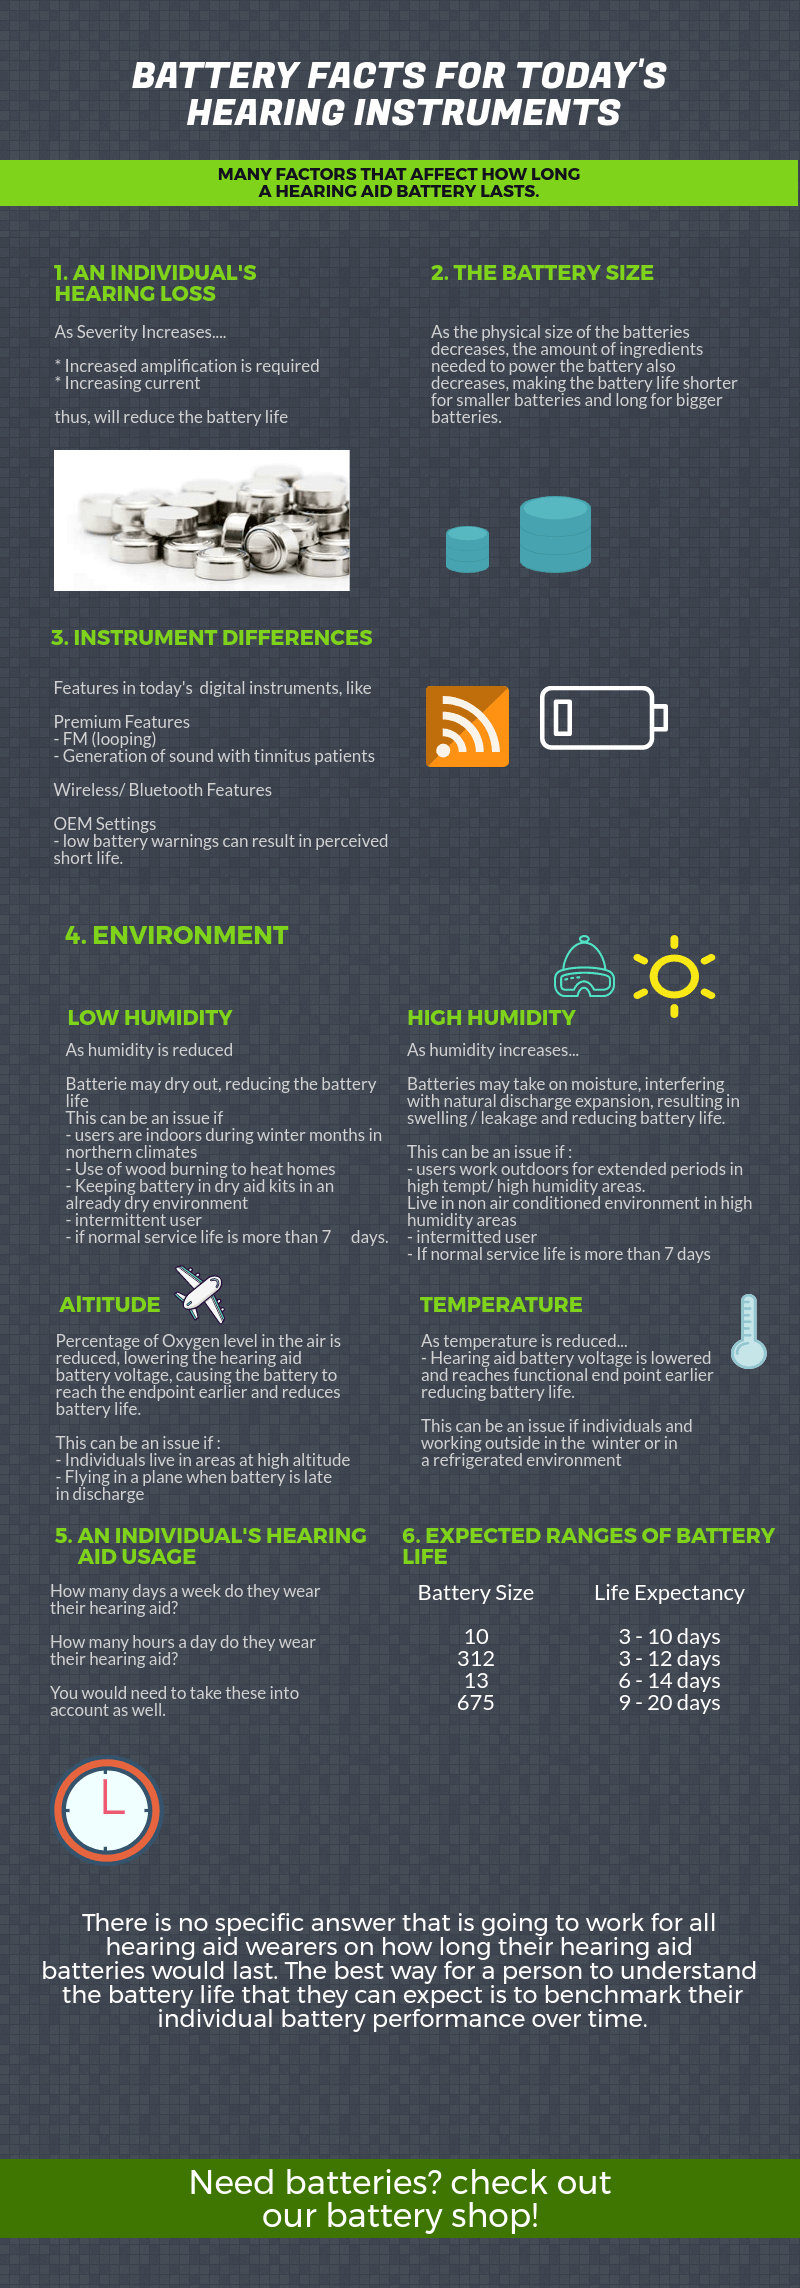 Important battery facts